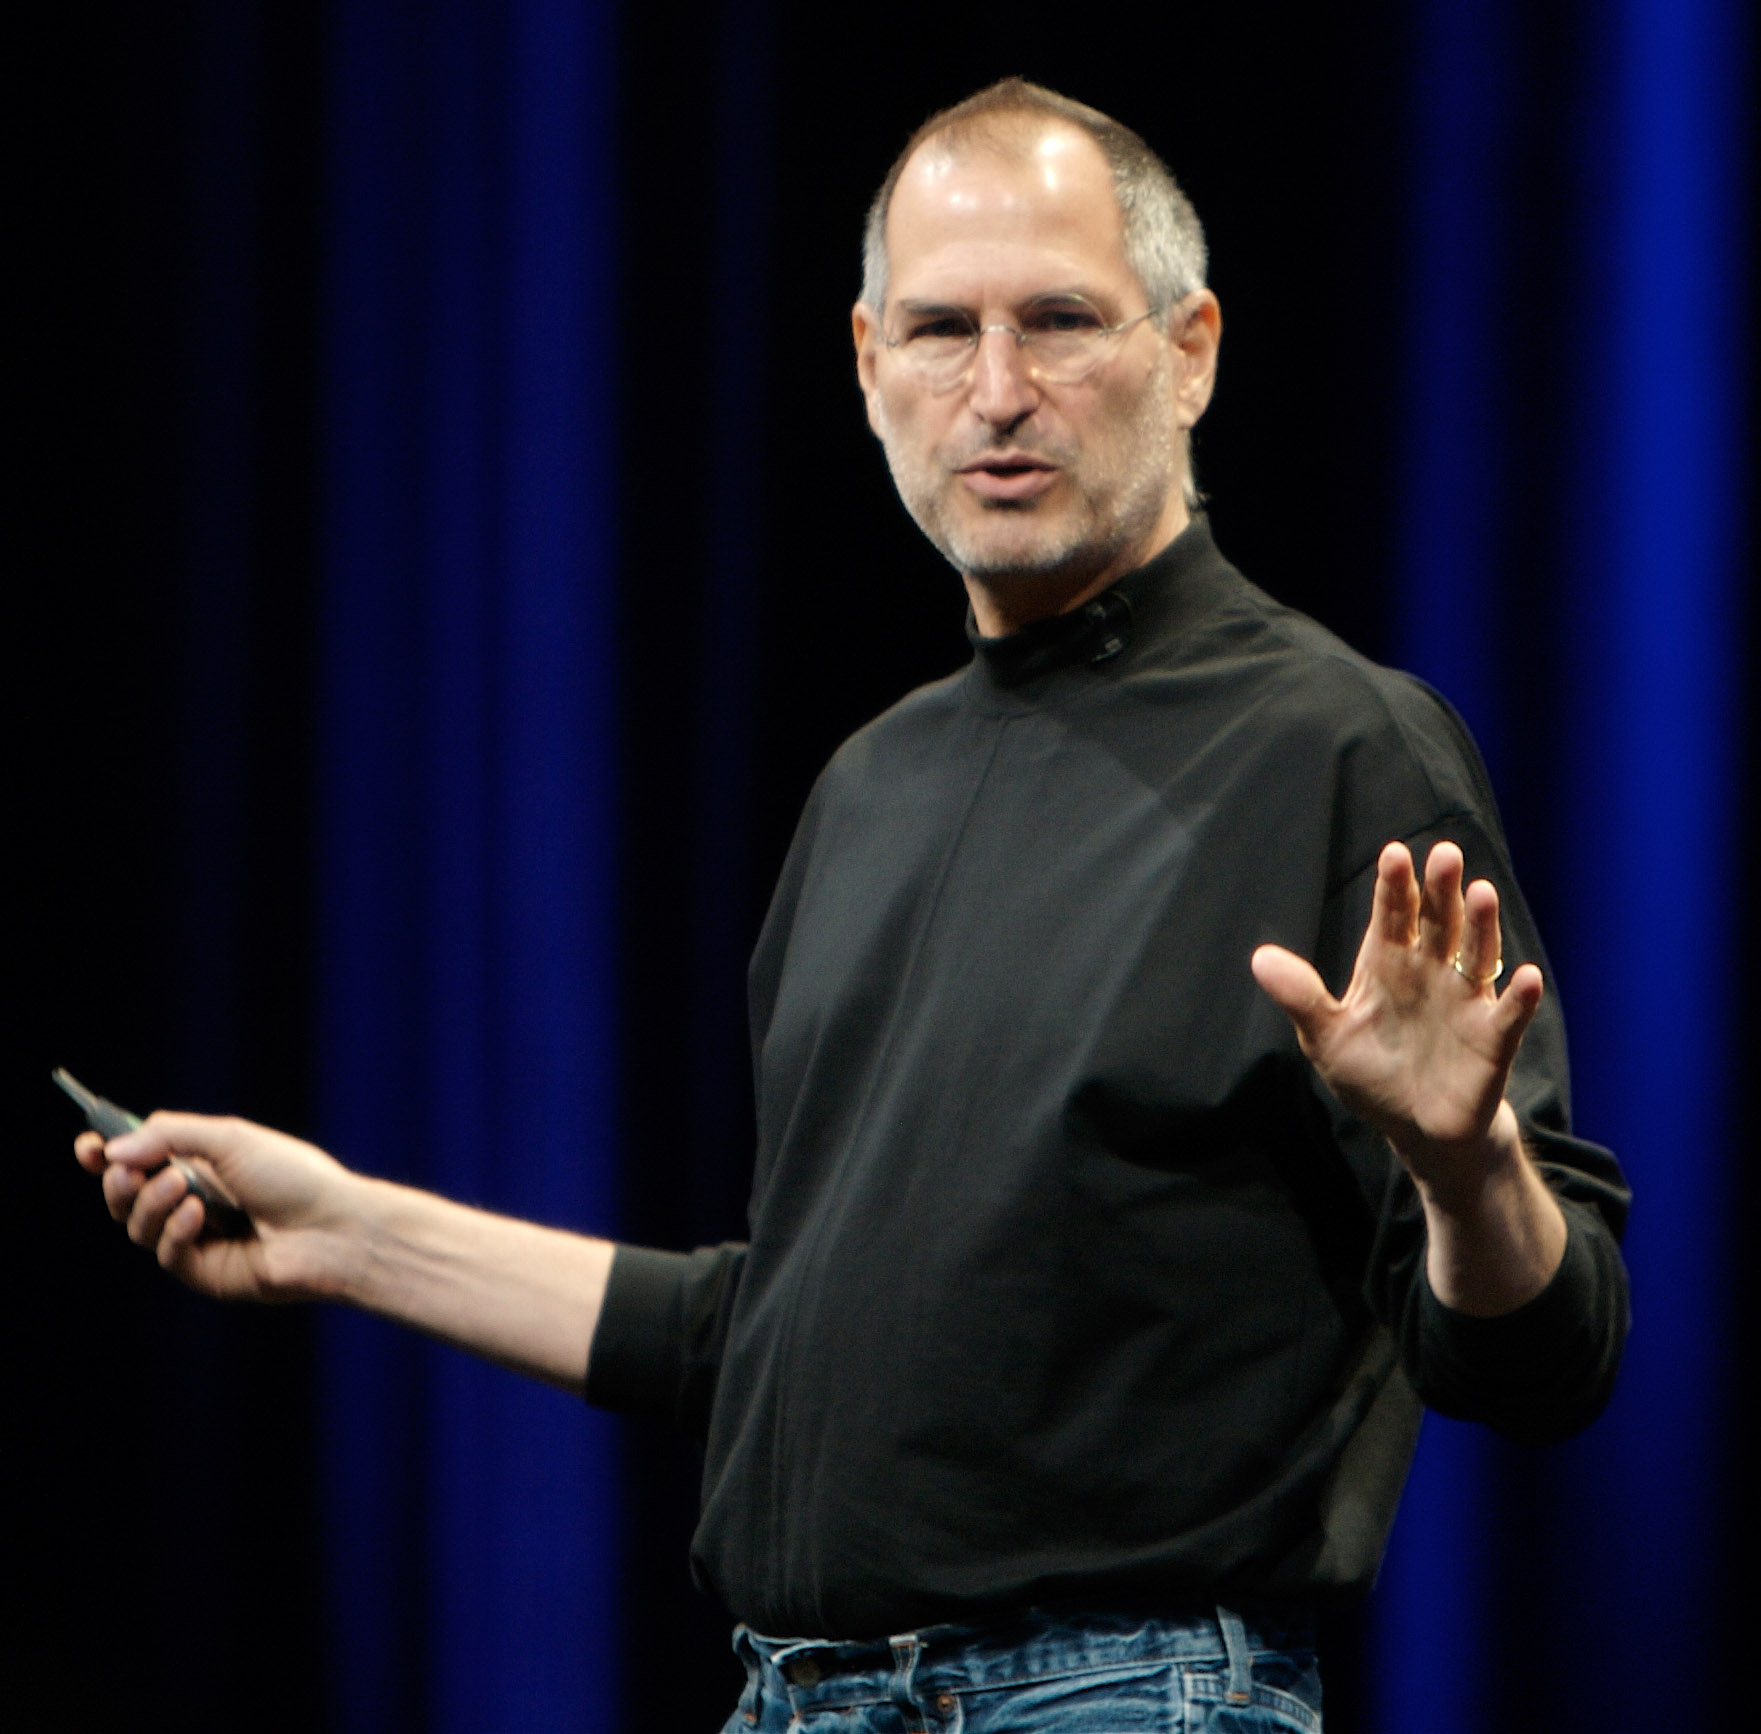 Steve Jobs WWDC07 Steve Jobs: How to Change the World